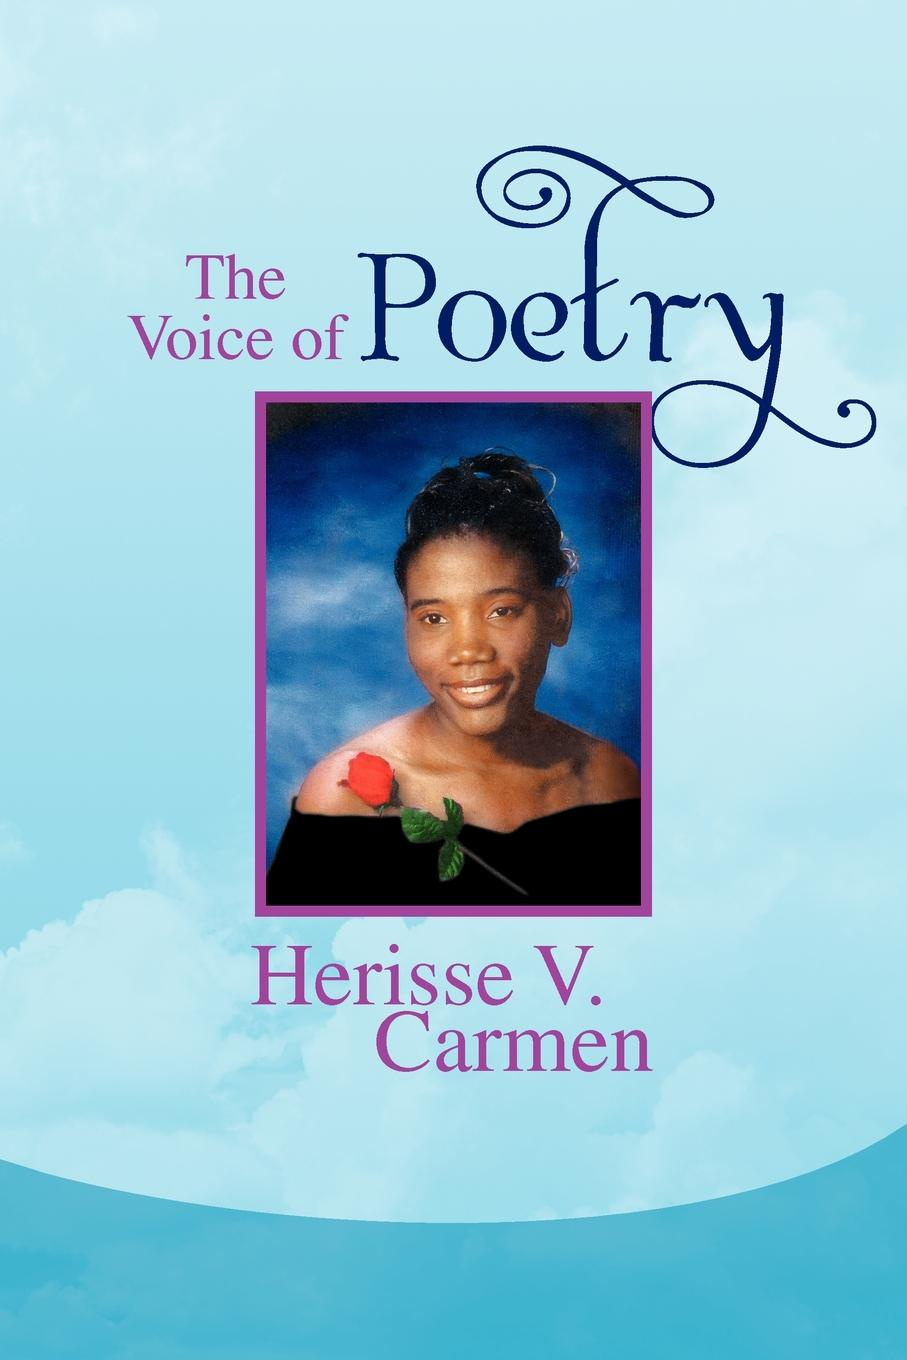 The Voice of Poetry. Herisse V. Carmen